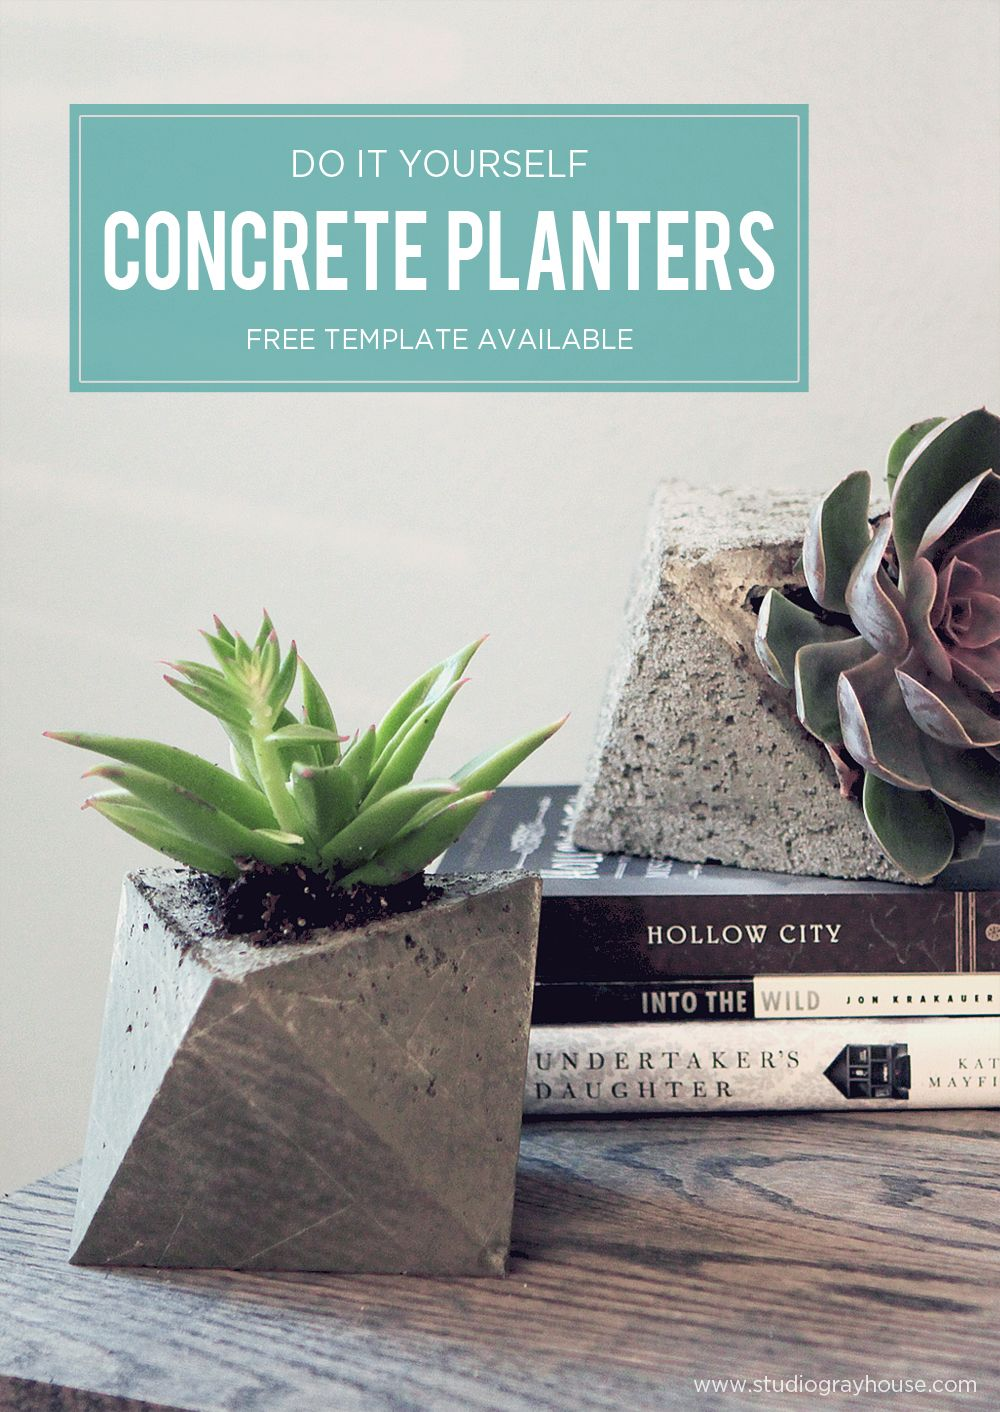 Diy concrete planters cement concrete projects pinterest diy geometric concrete planters made from a cardboard mold easy and inexpensive diy home decor solutioingenieria Image collections